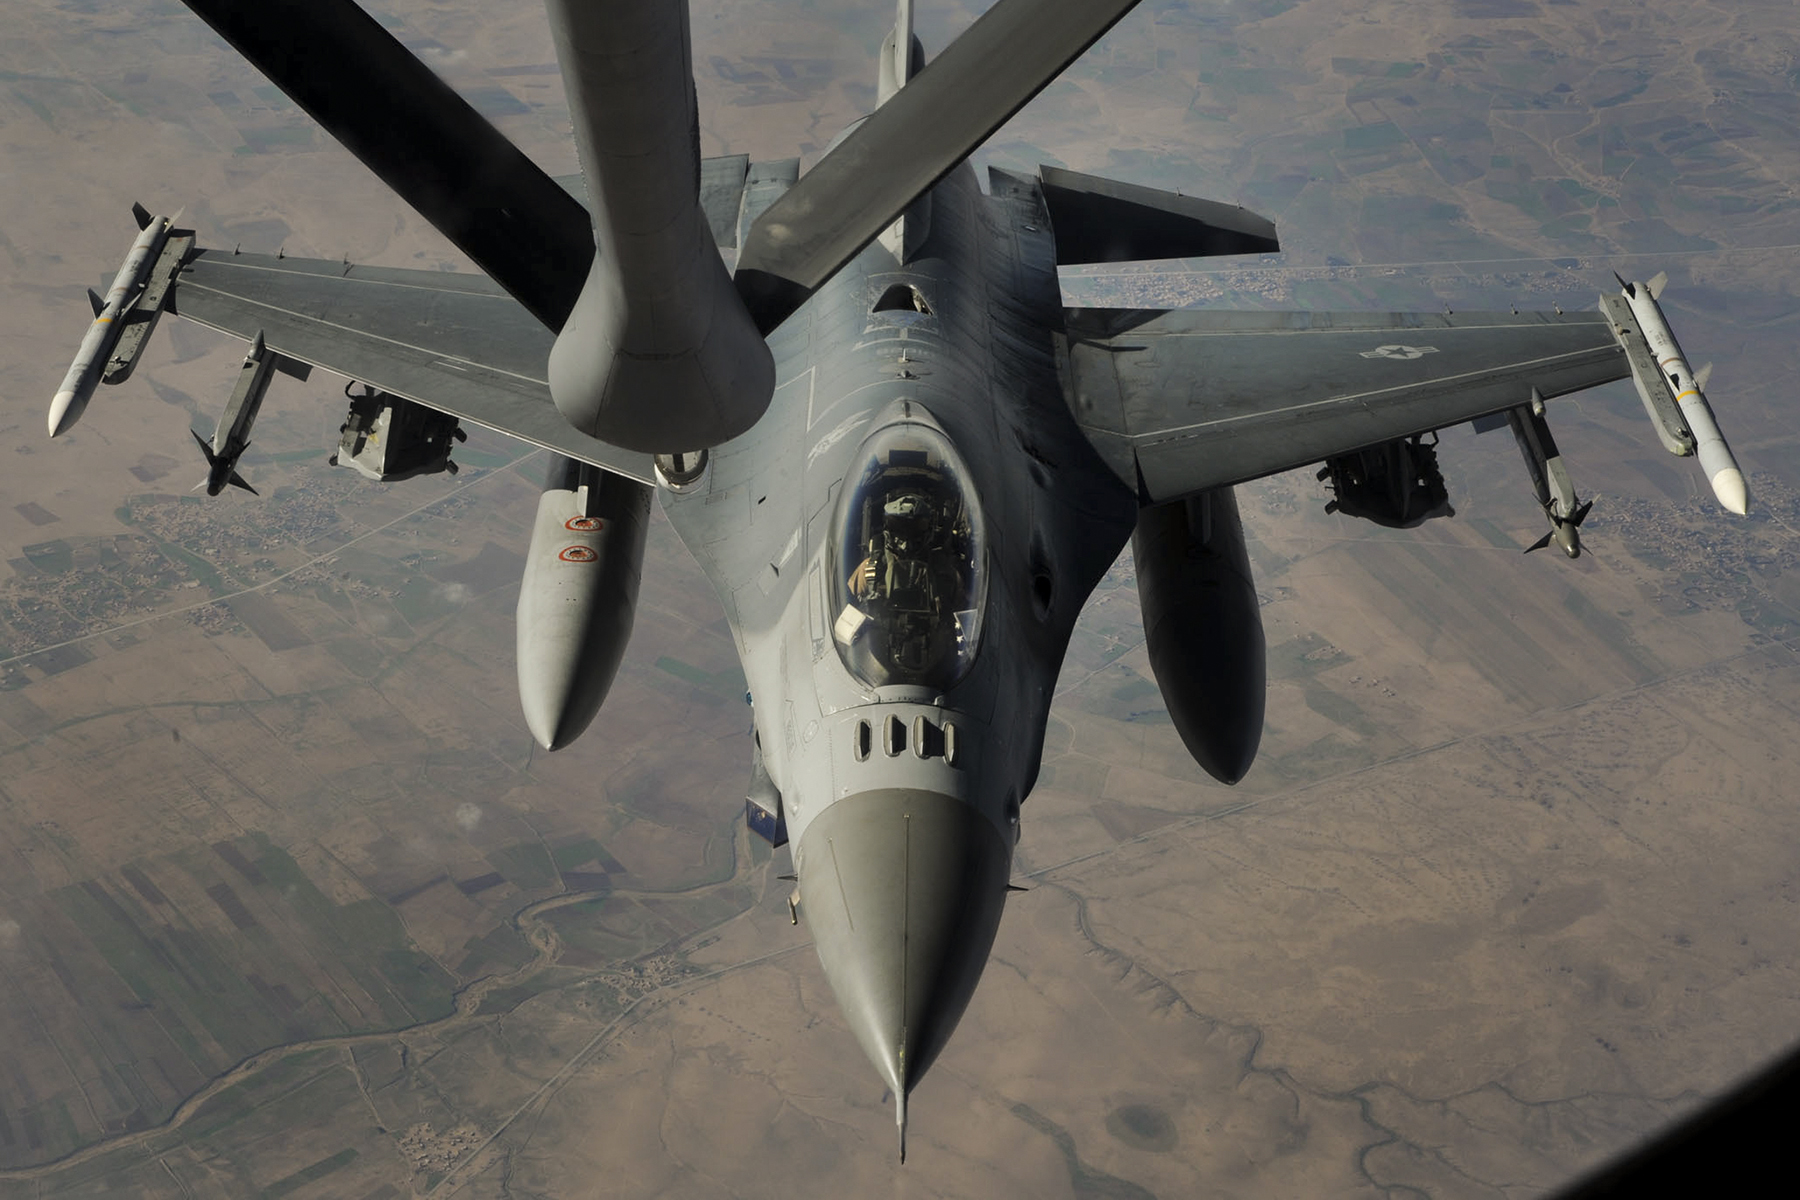 Study: Hundreds of Civilians Reported Killed in First Year of Coalition Airstrikes